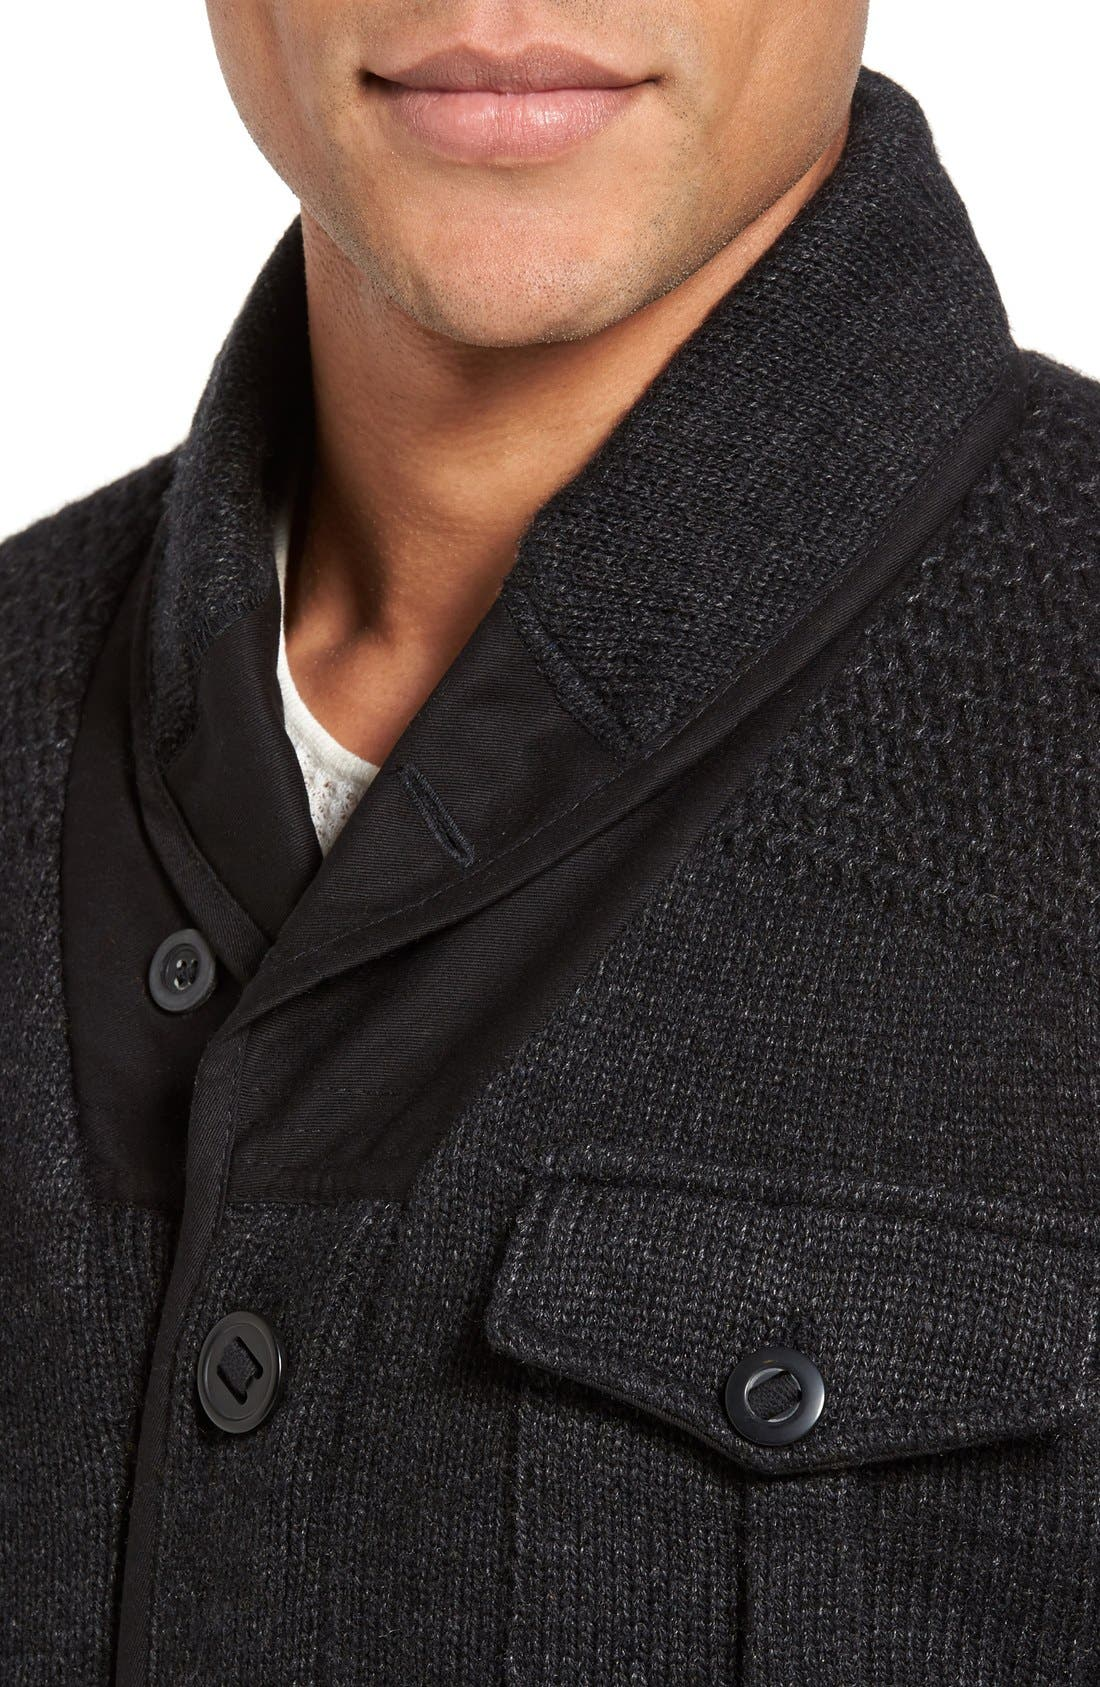 Military Sherpa-Lined Sweater Jacket,                             Alternate thumbnail 4, color,                             Black